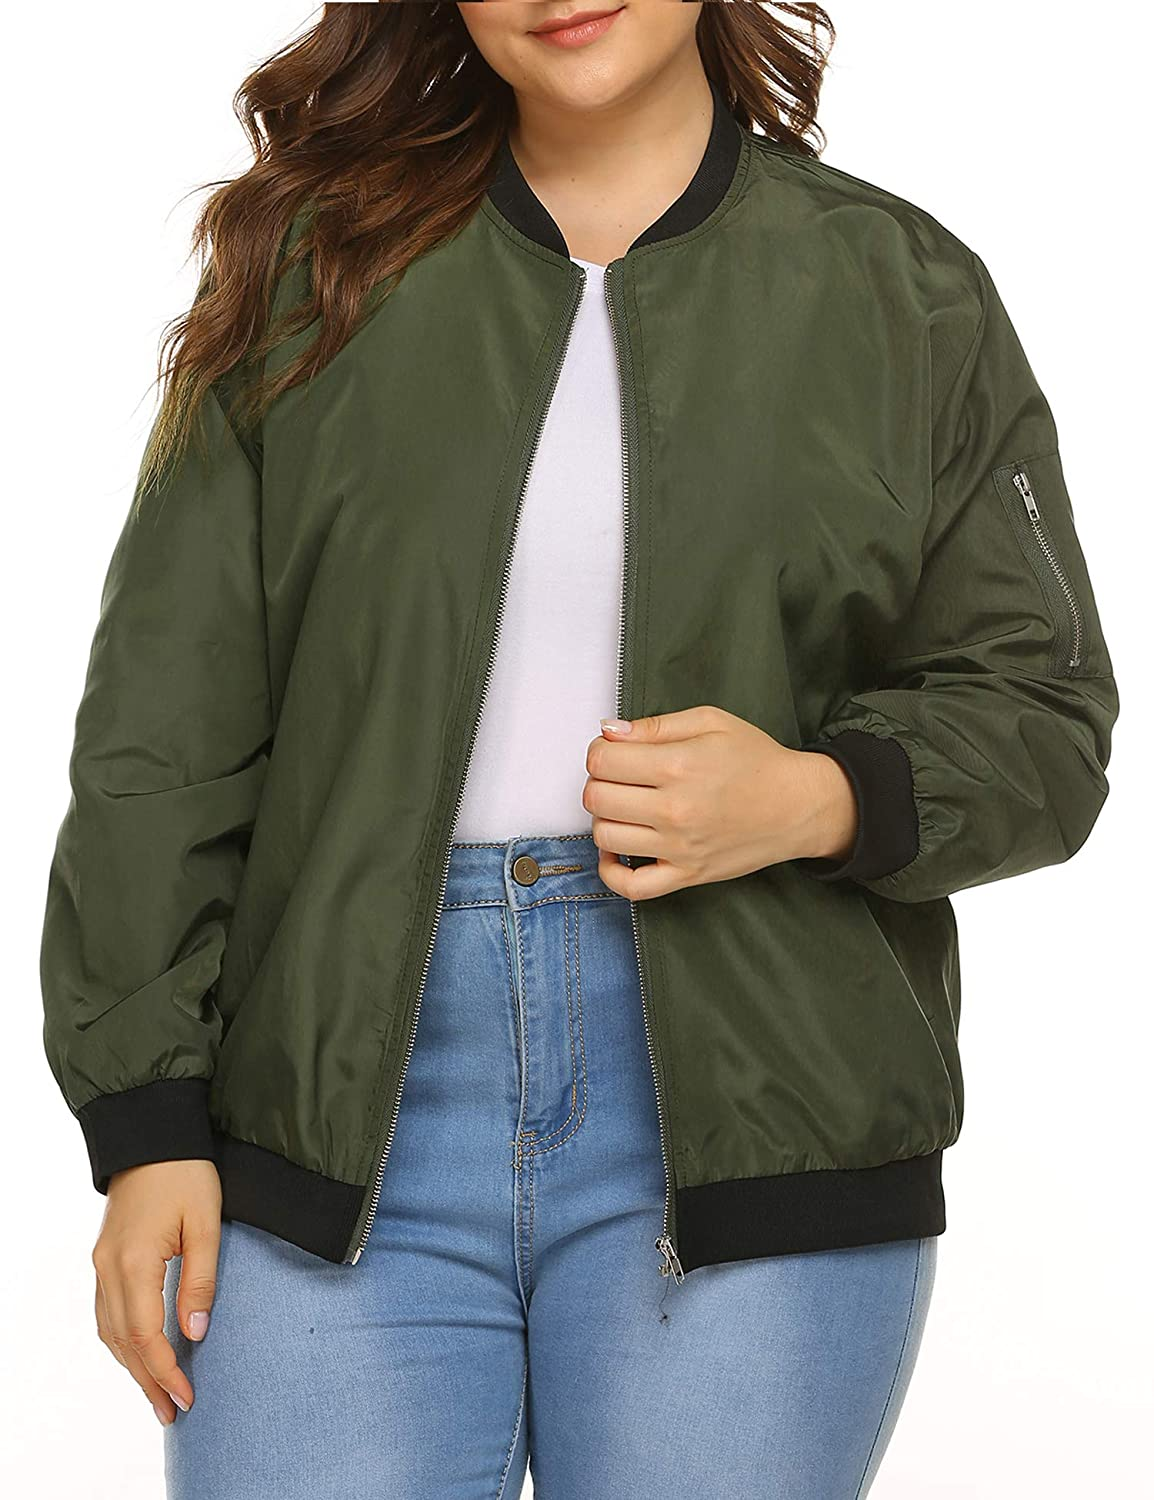 e8c90cbed IN'VOLAND Womens Bomber Jacket Plus Size Lightweight with Pockets ...